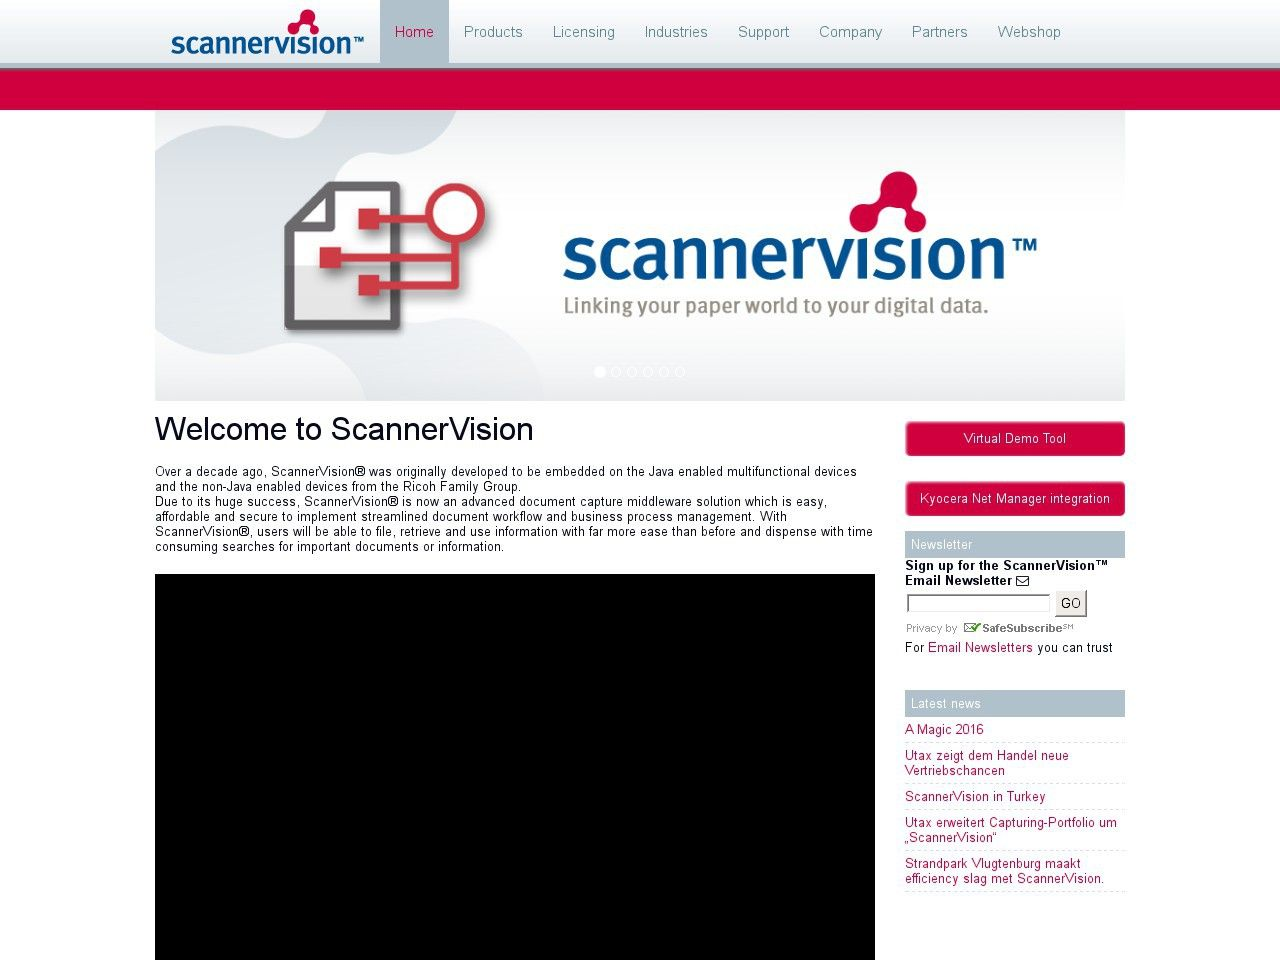 ScannerVision Gold Pre-Paid license Coupon code - Exclusive  Discount Code Here are the biggest  deals.  Here is the coupon code http://freesoftwarediscounts.com/shop/scannervision-gold-pre-paid-license-discount/